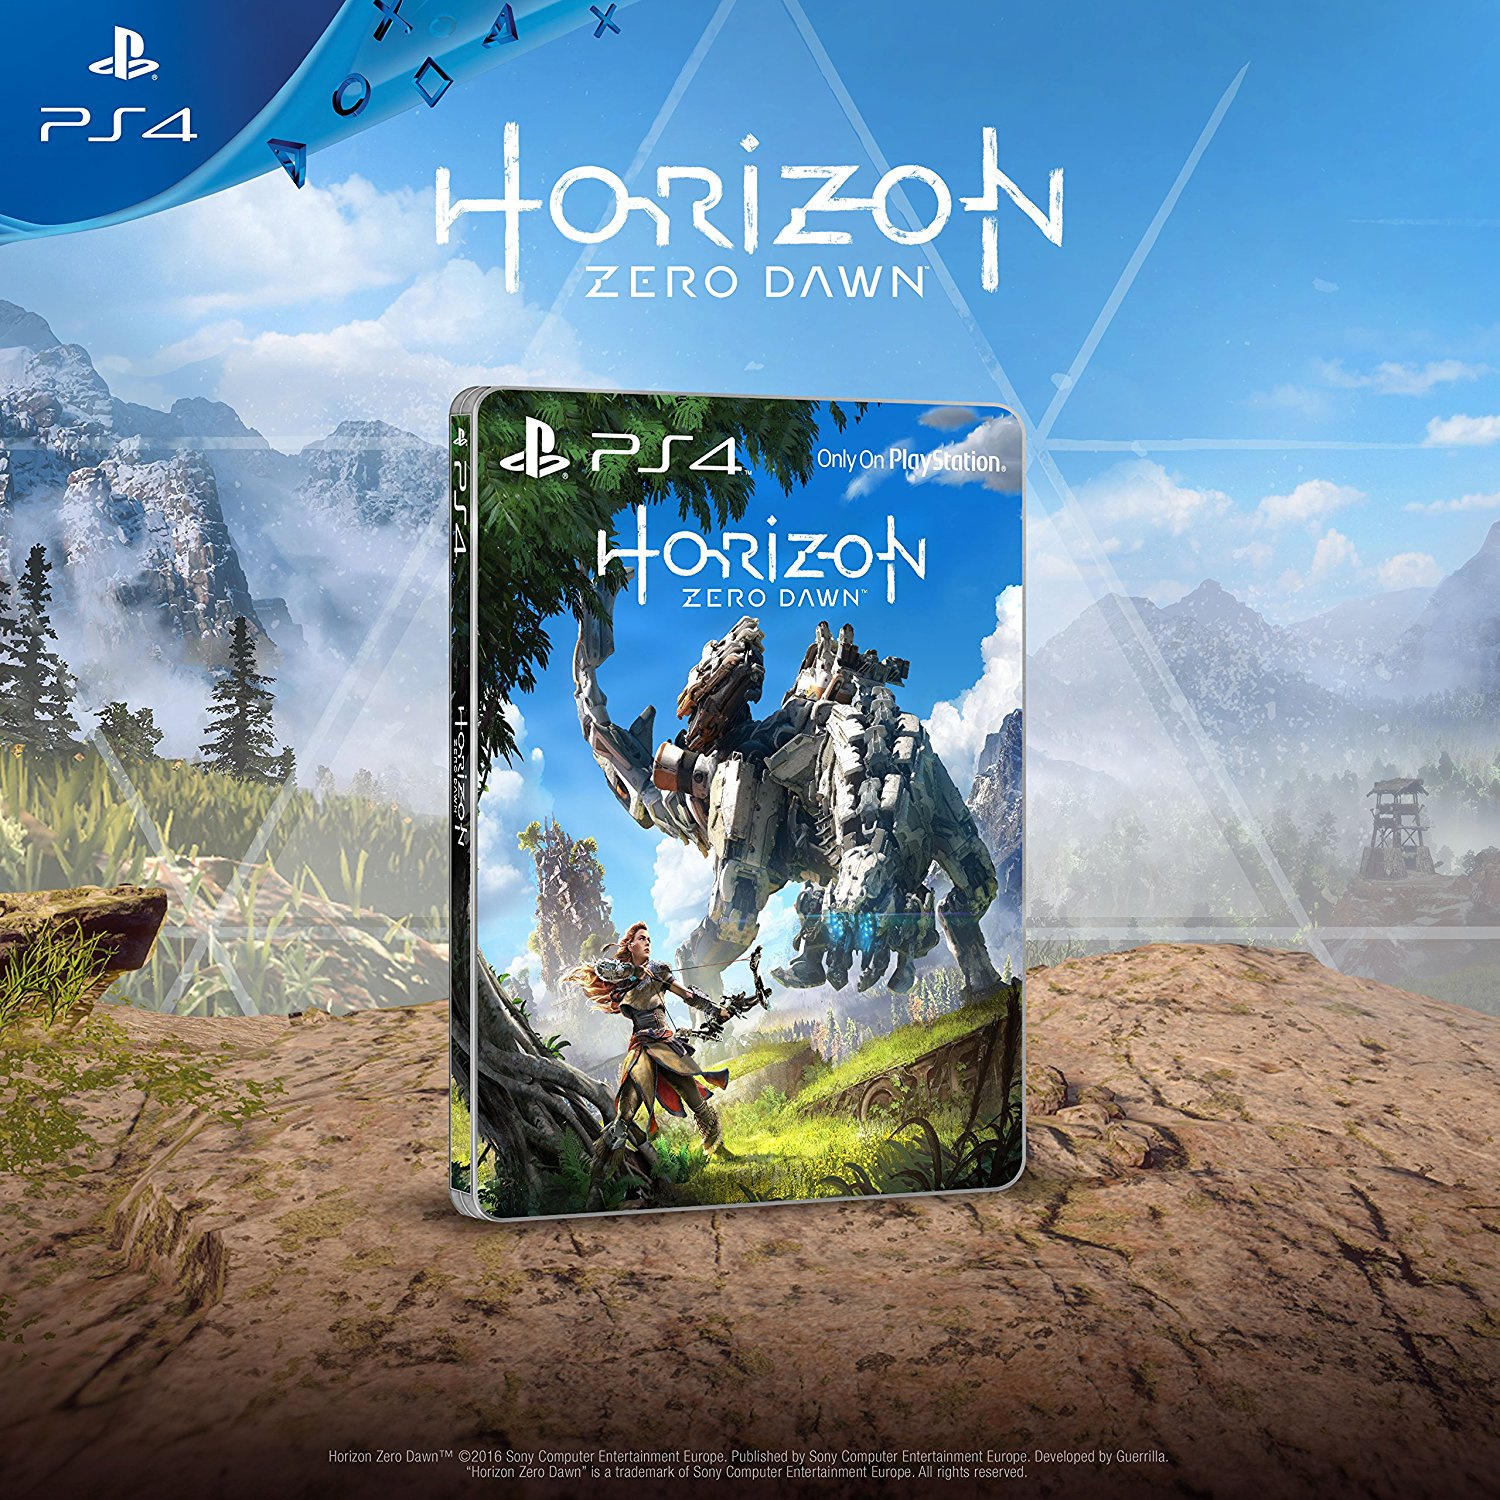 Amazon Uks Selling A Horizon Zero Dawn Steelbook Without The Game Sony Playstation 4 Collector Edition Ps4 1 Collectors Editions